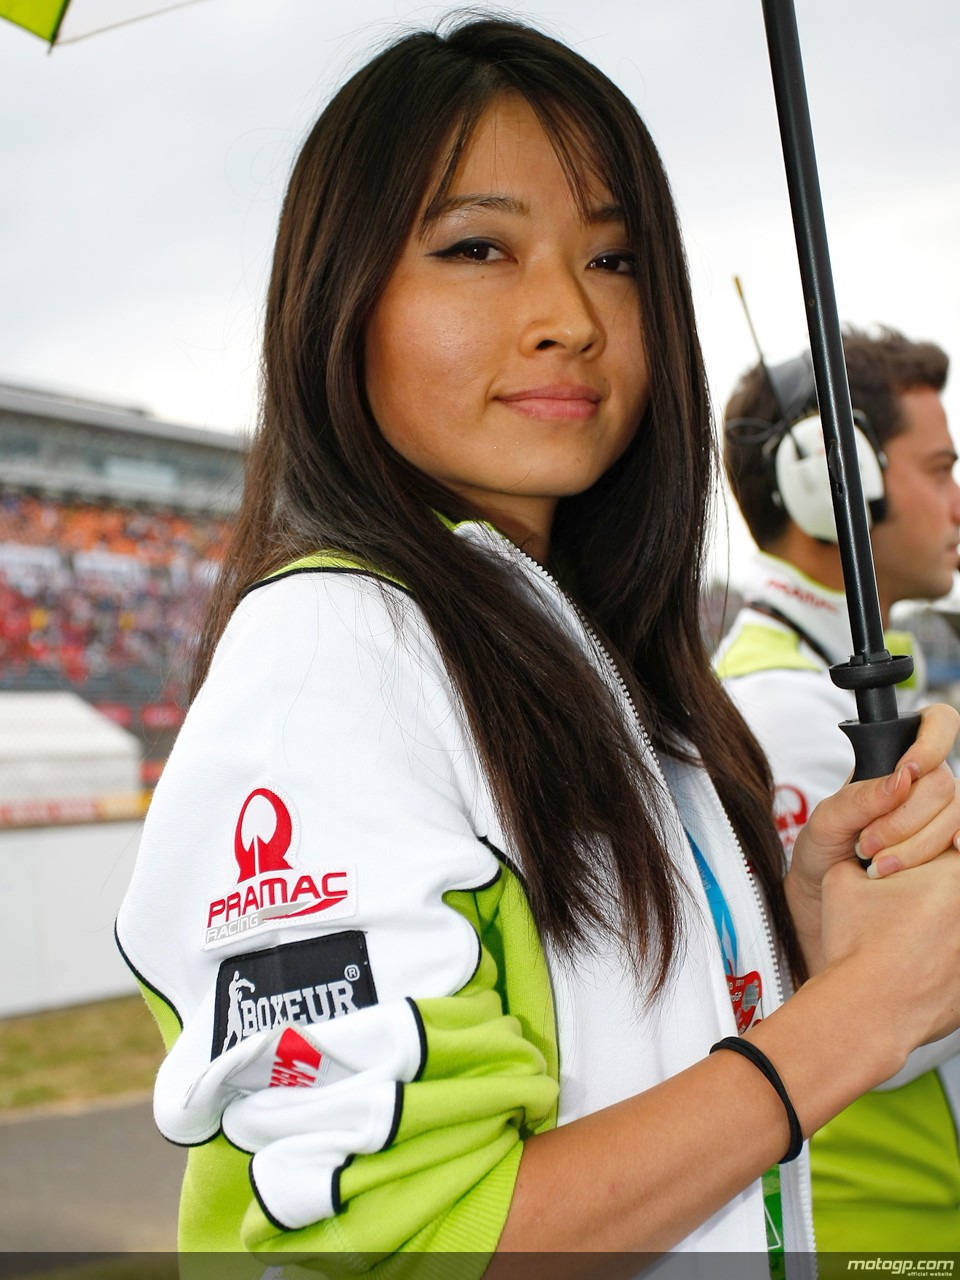 Pictures of Paddock Girls for Moto GP - Japan (1) ~ Just A